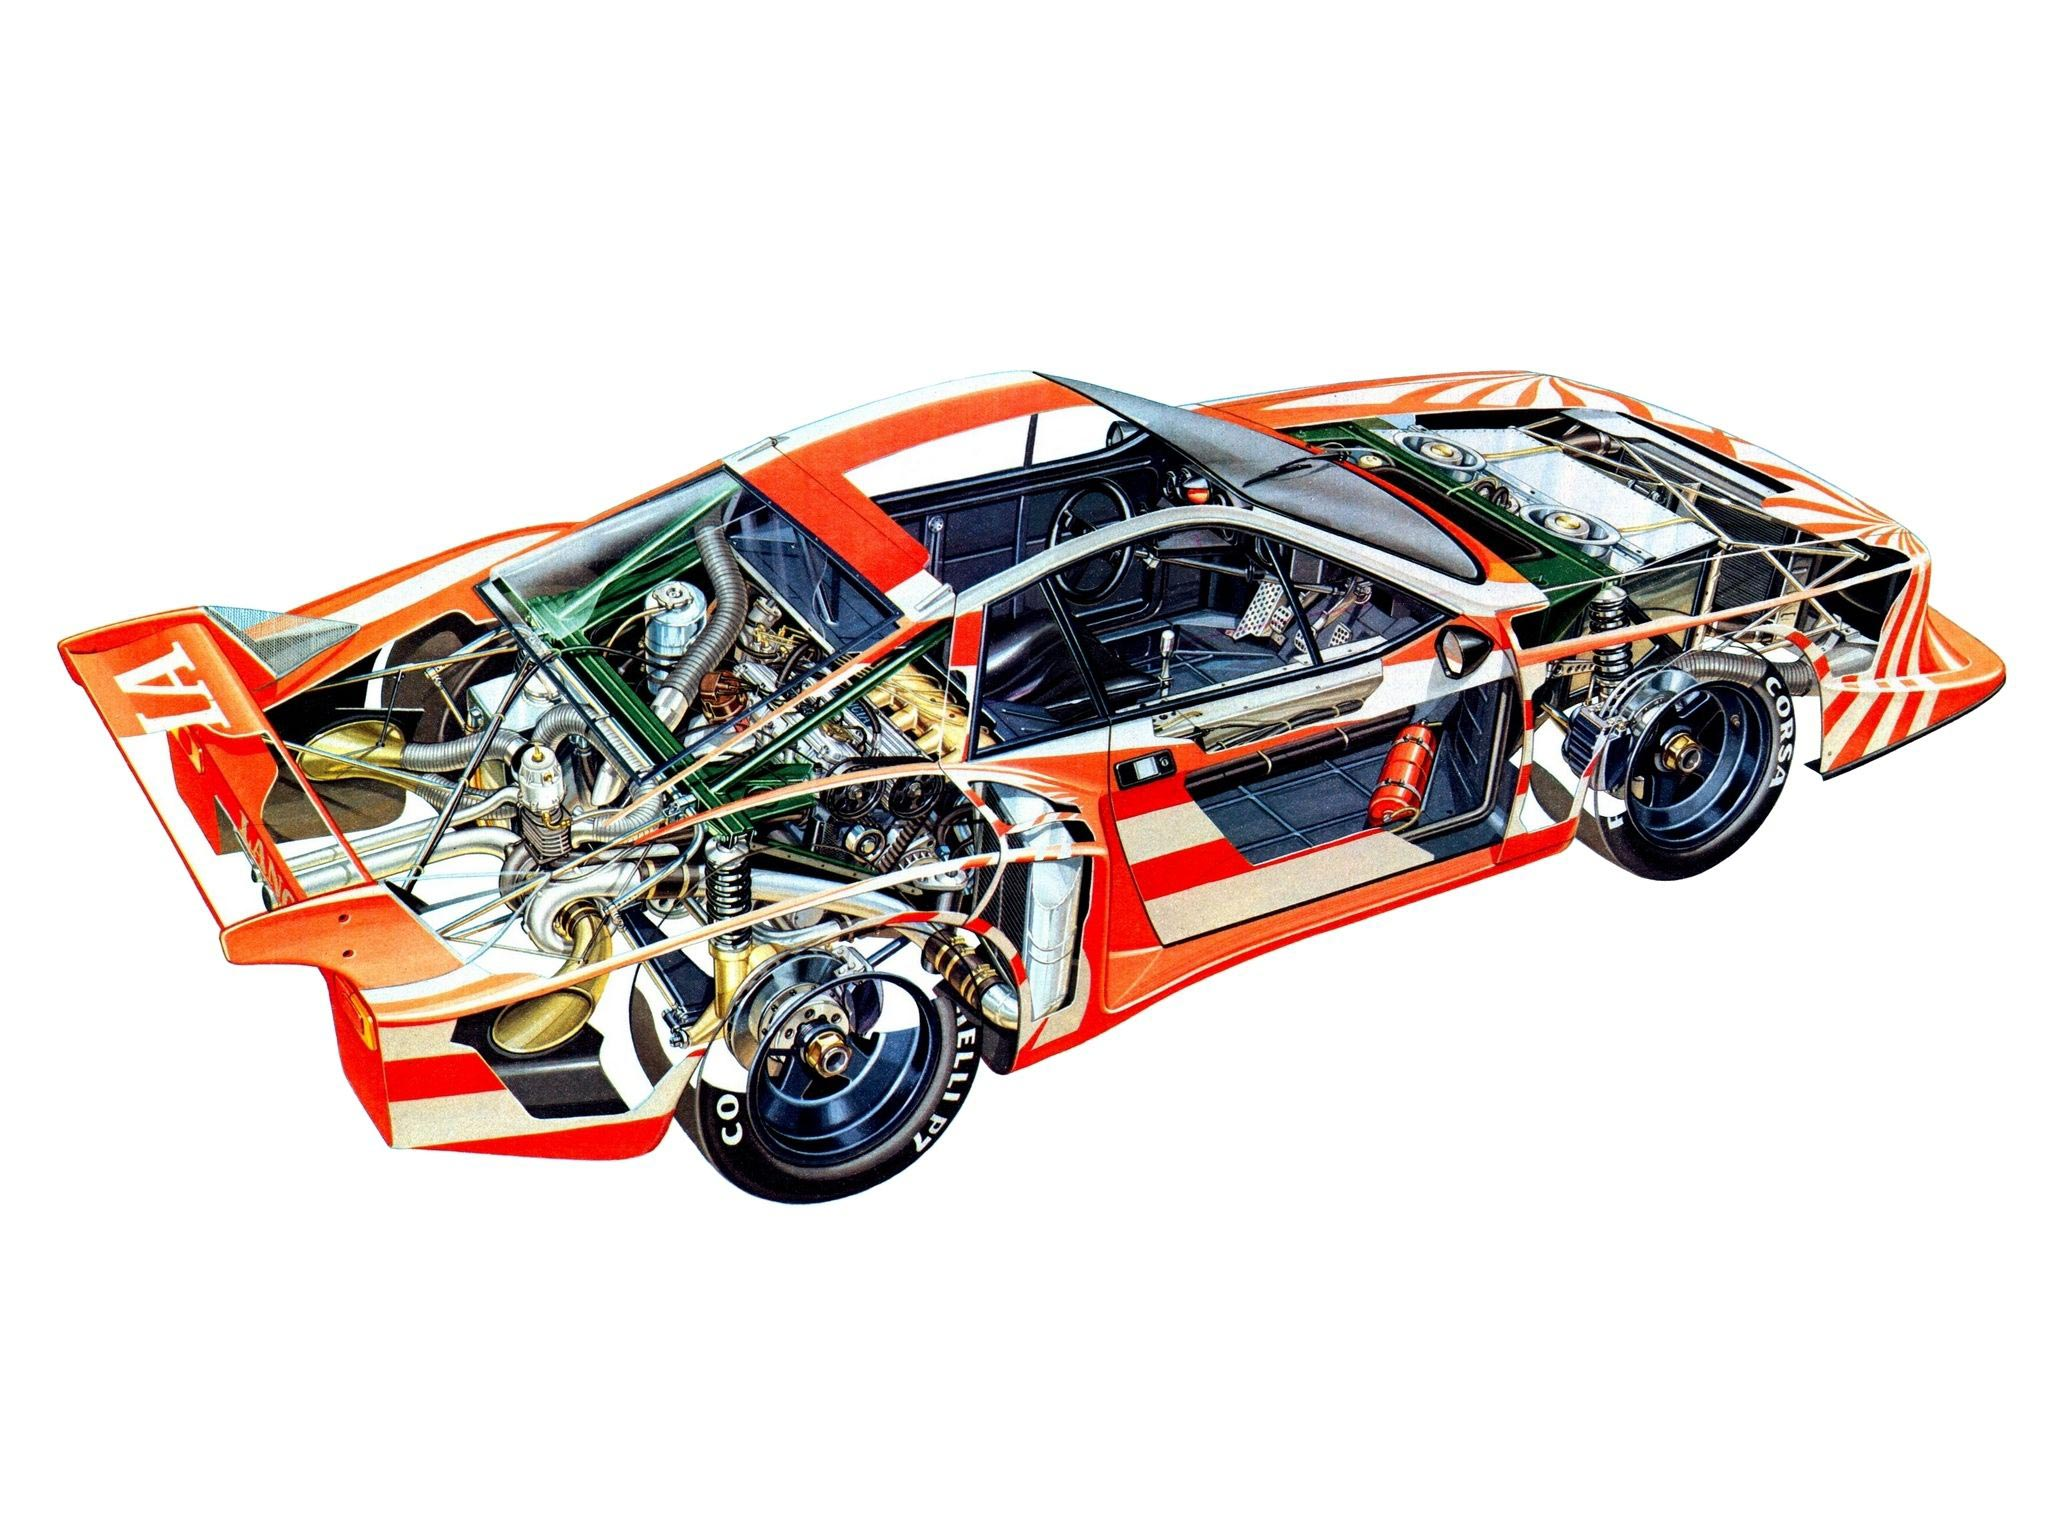 lancia montecarlo turbo gruppe 5 1978 cutaway drawing in high quality